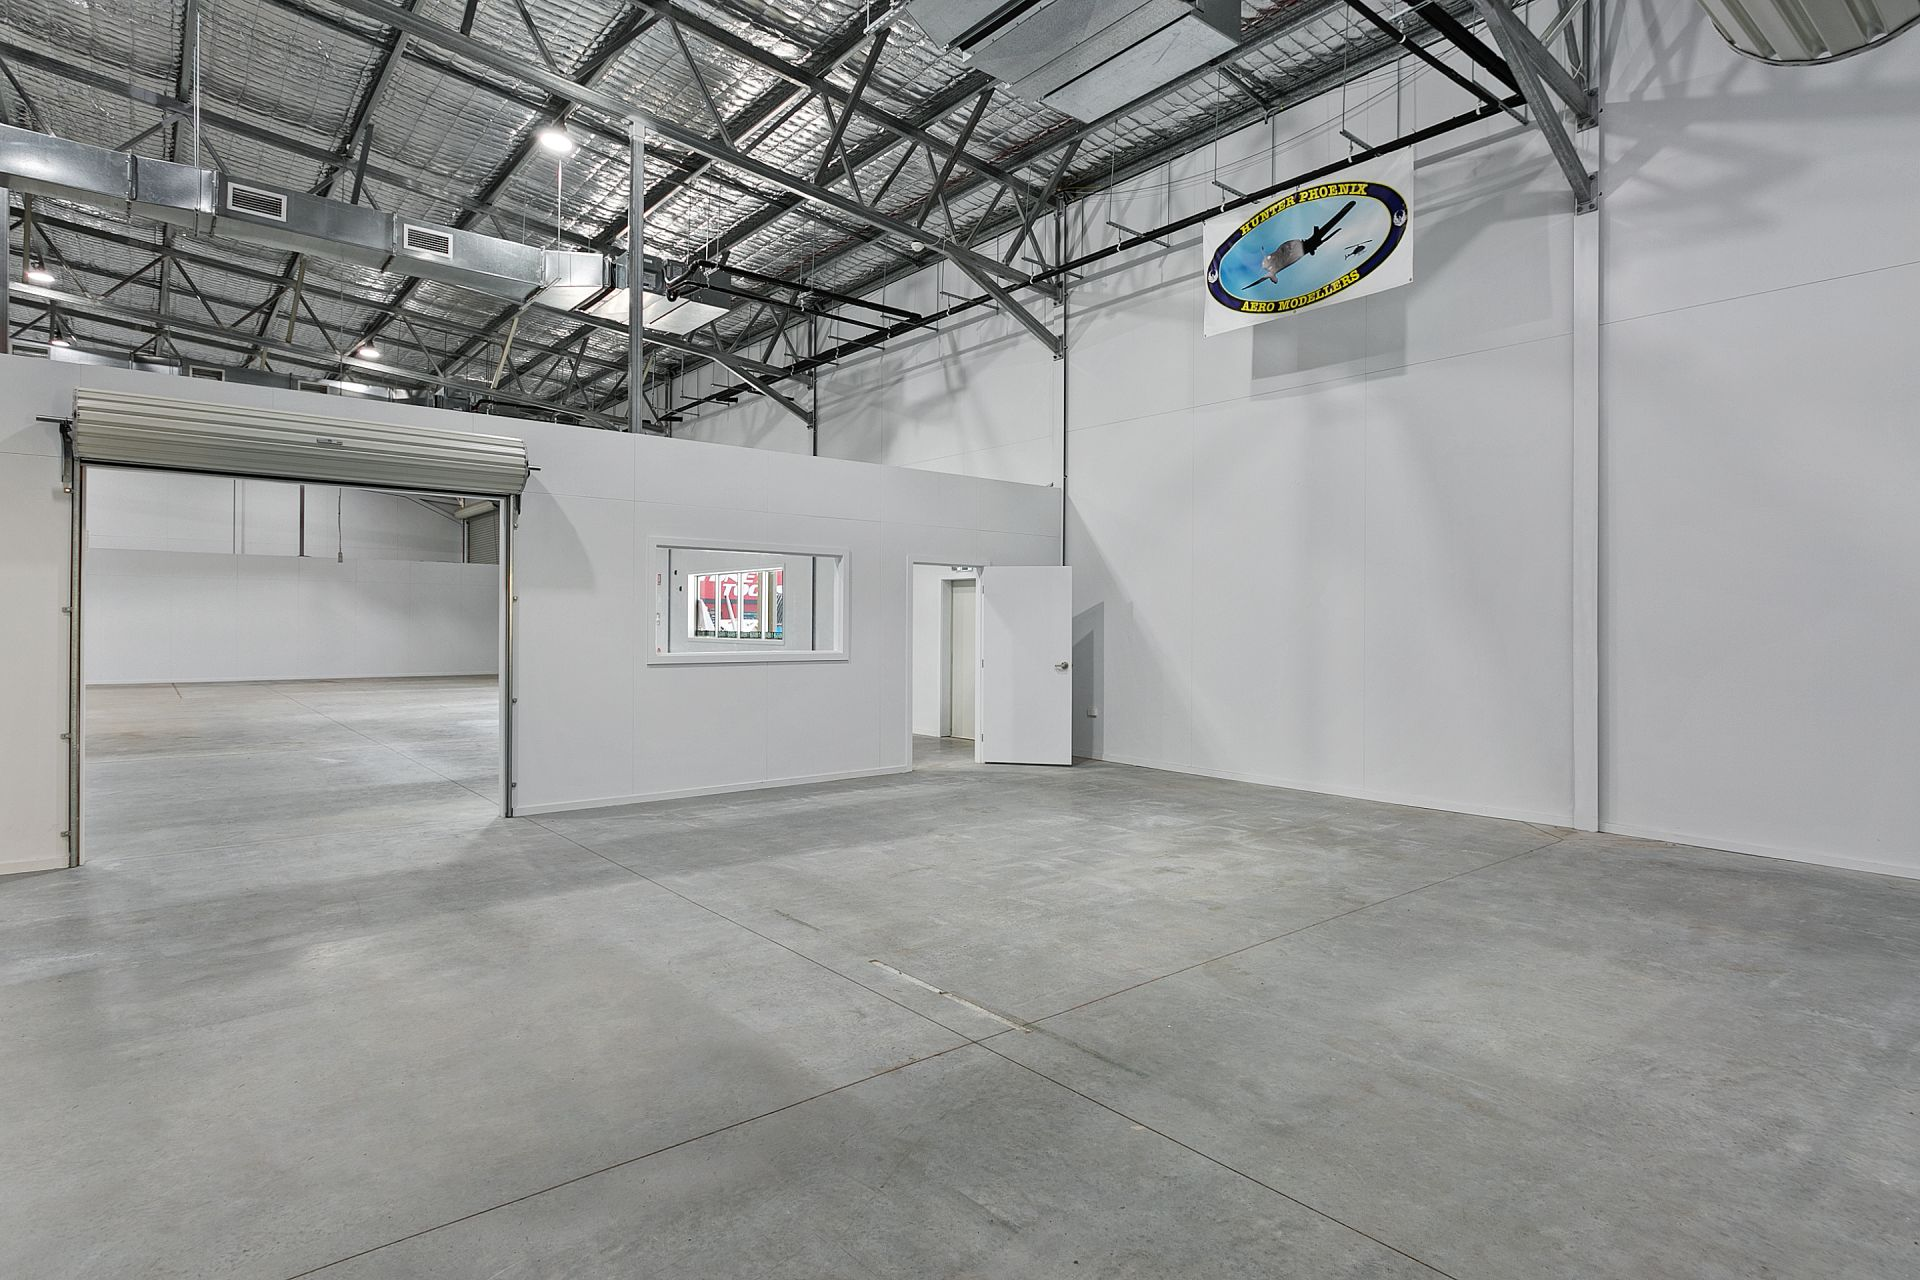 Showroom/Warehouse with Highway Exposure